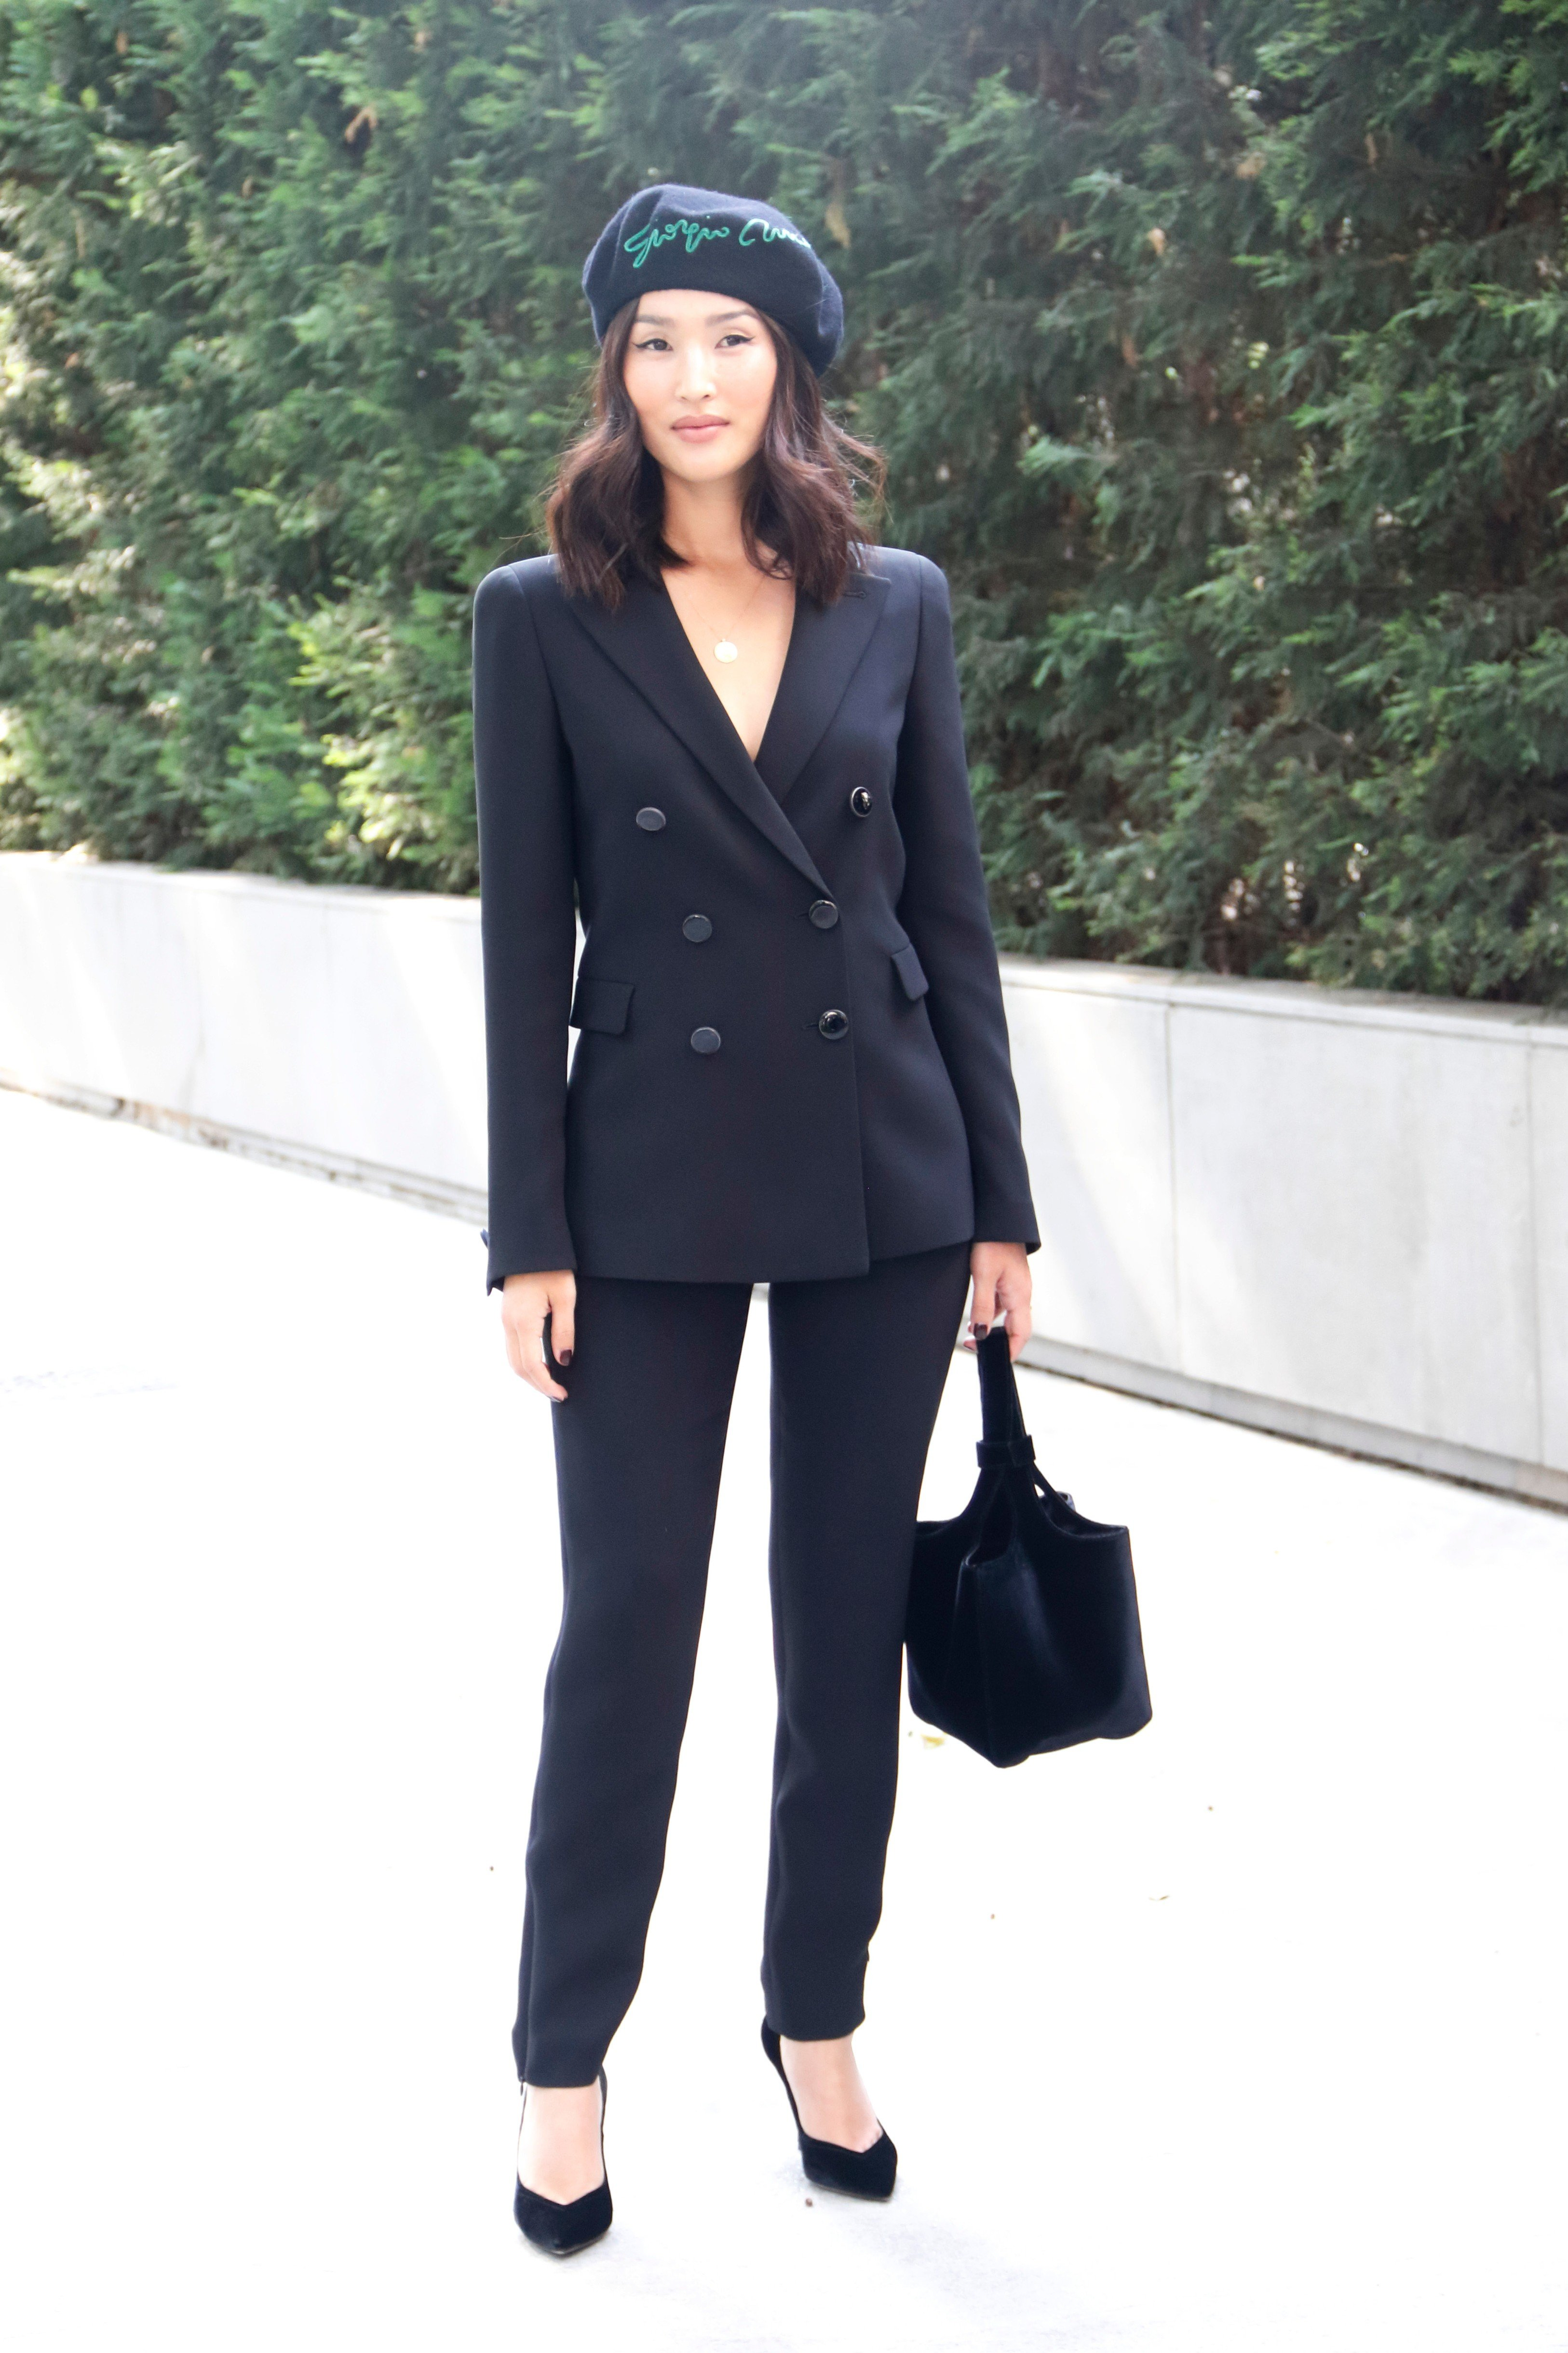 Nicole Warne arriving at Giorgio Armani Fashion Show during Milan Fashion Week Spring/Summer 2018 on September 23, 2017 in Milan, Italy., Image: 350342895, License: Rights-managed, Restrictions: , Model Release: no, Credit line: Profimedia, Abaca